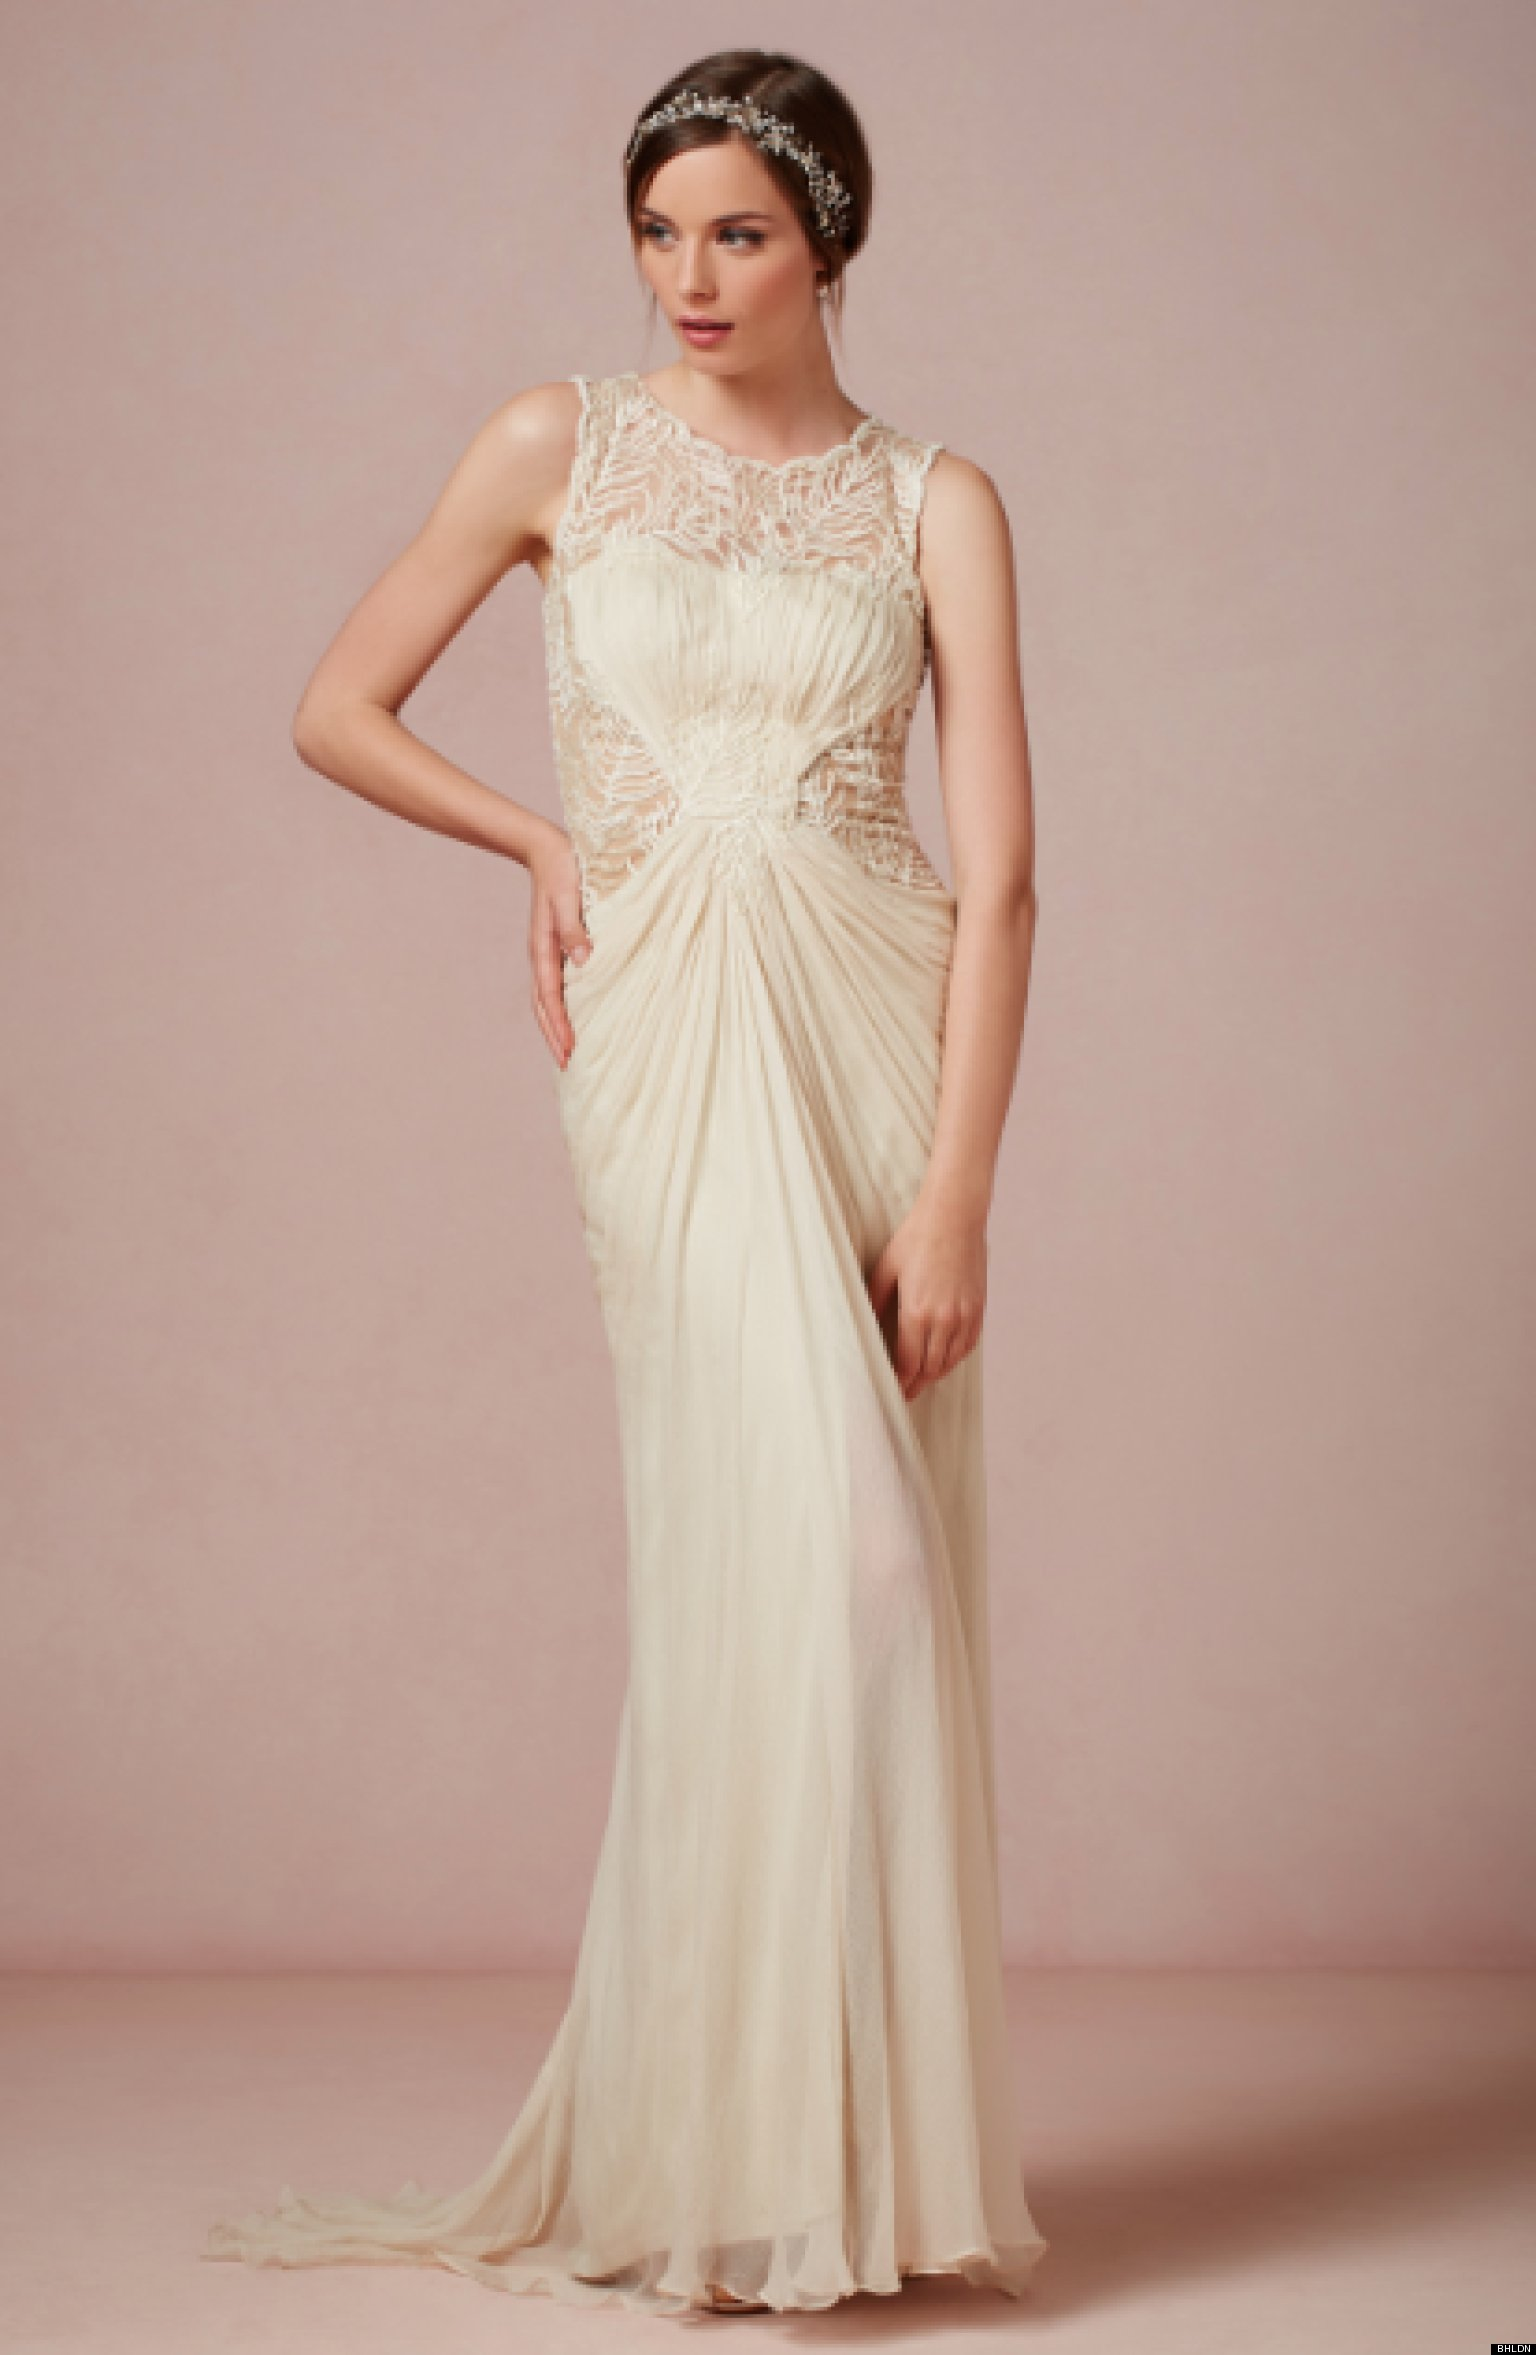 Wedding Anthropology Wedding Dresses bhldn wedding dresses for fall 2013 revealed photos huffpost